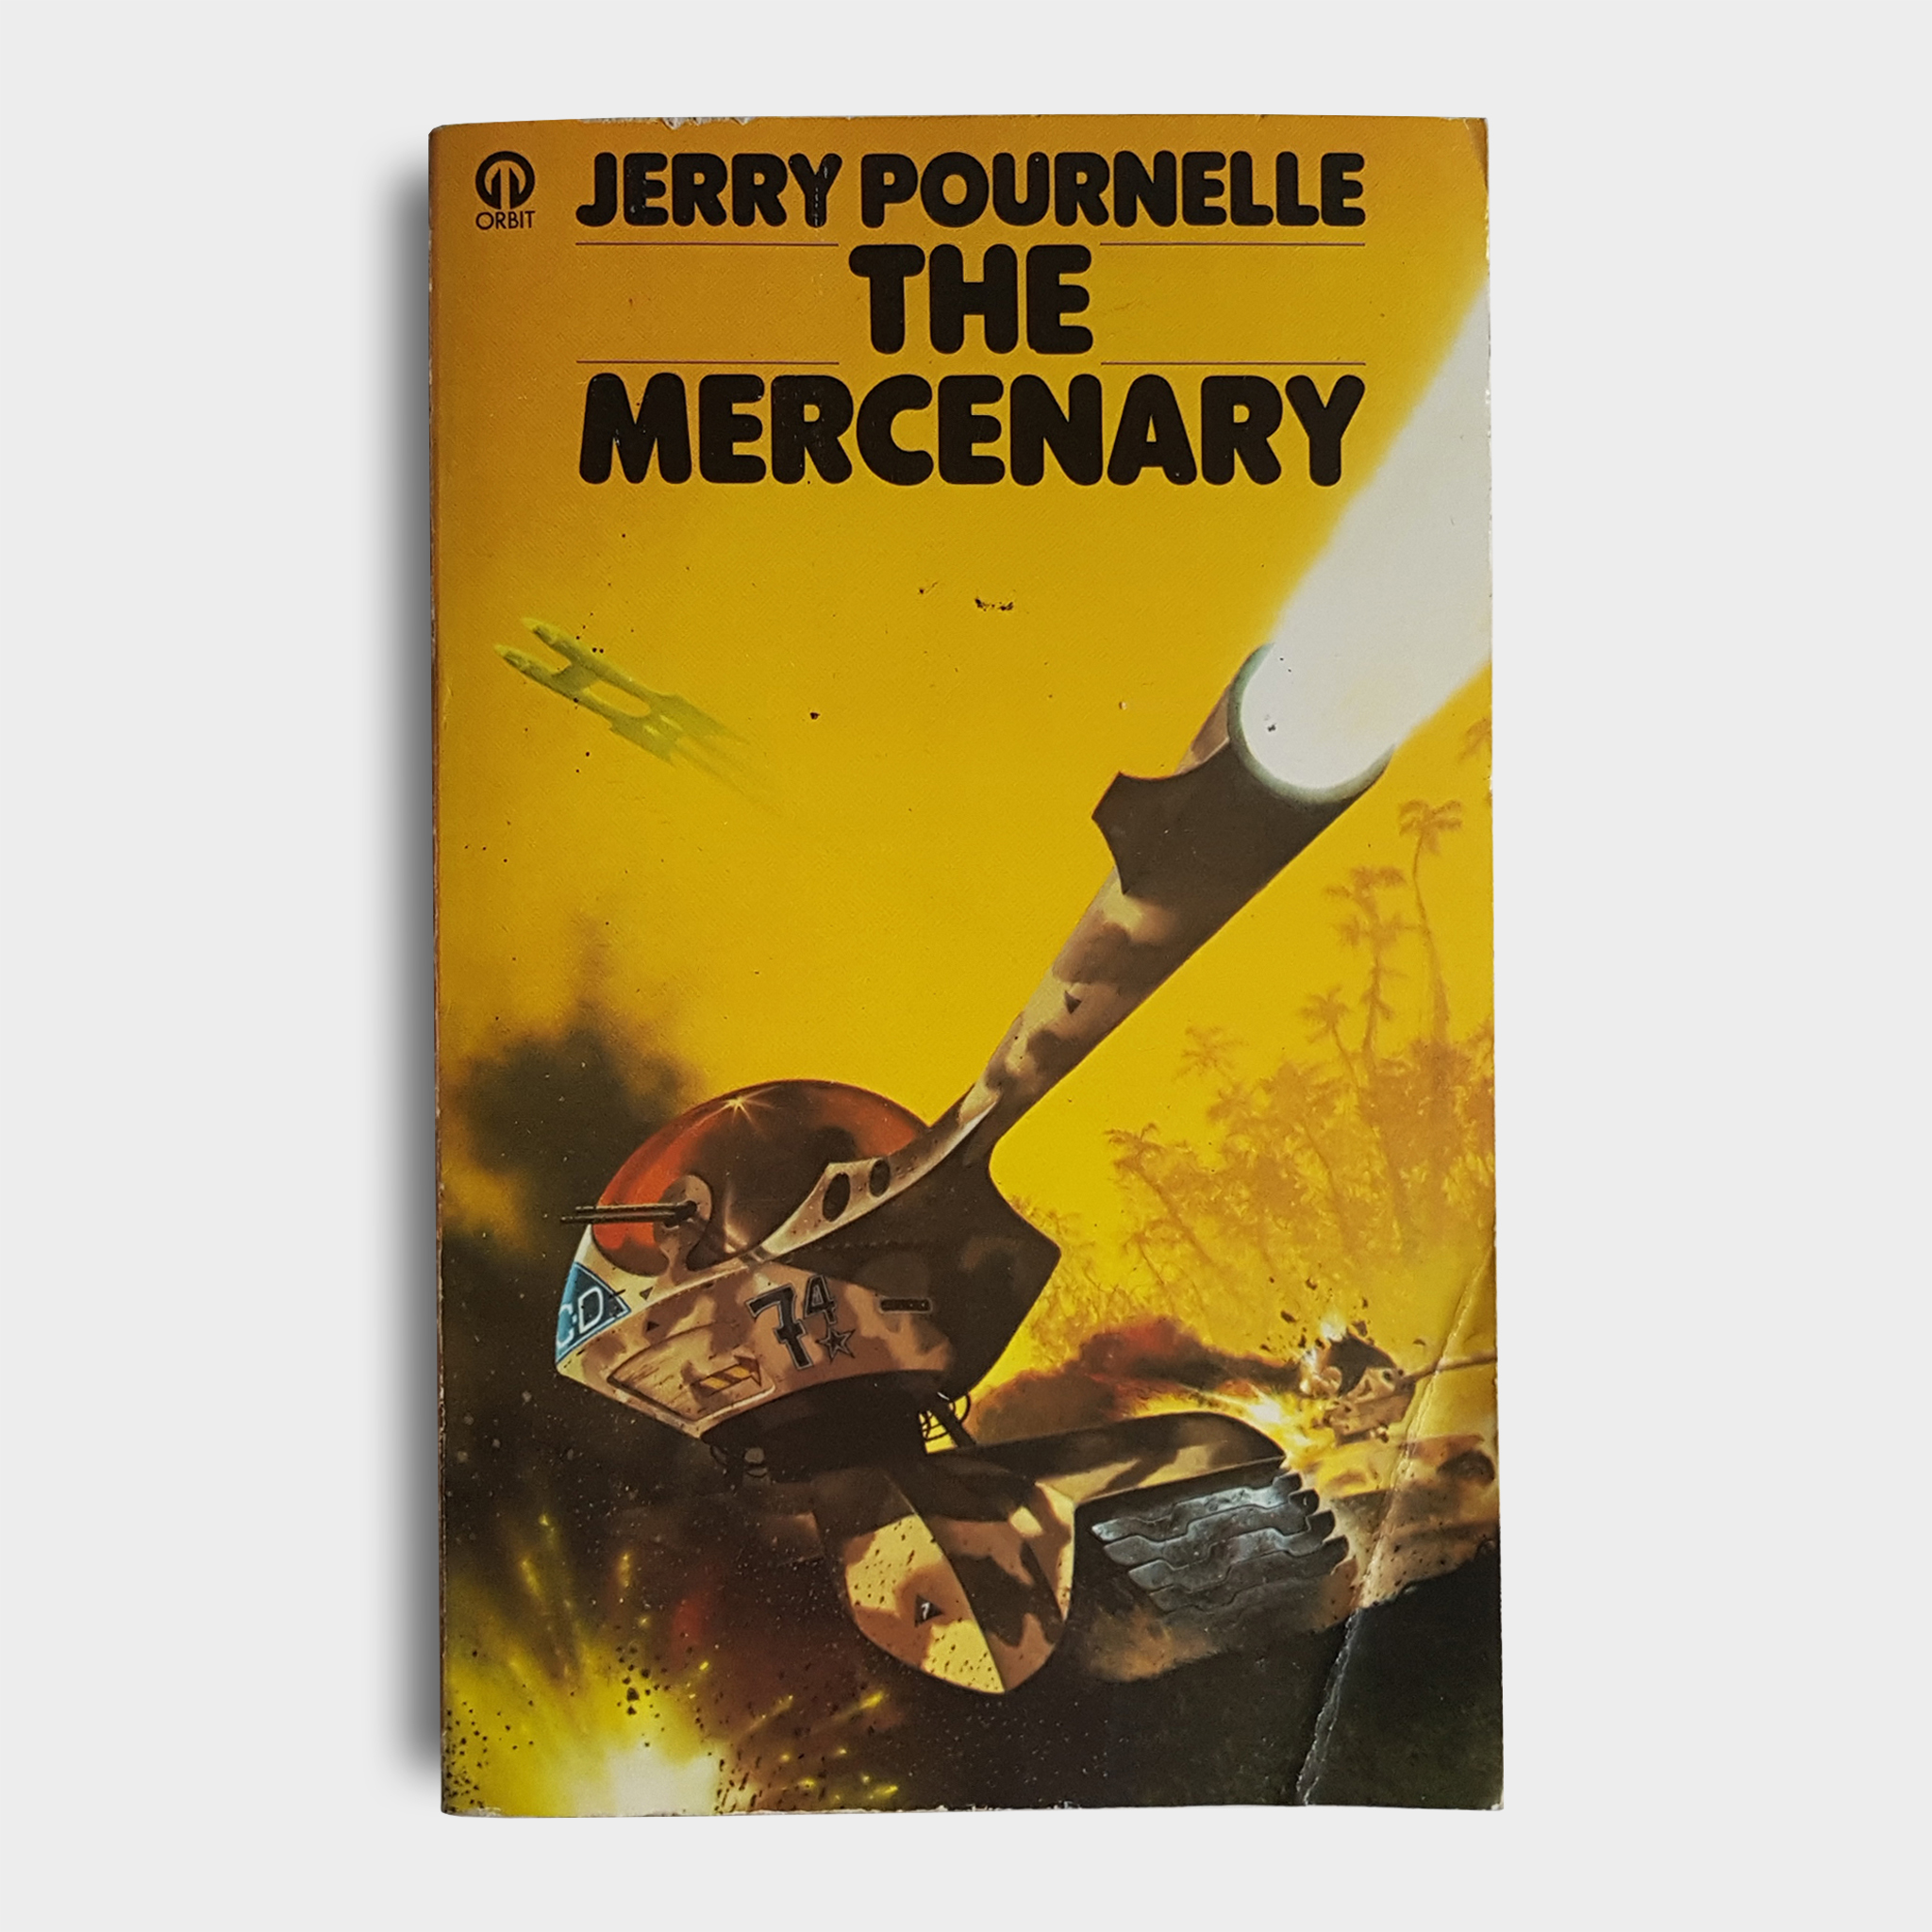 Jerry Pournelle - The Mercenary